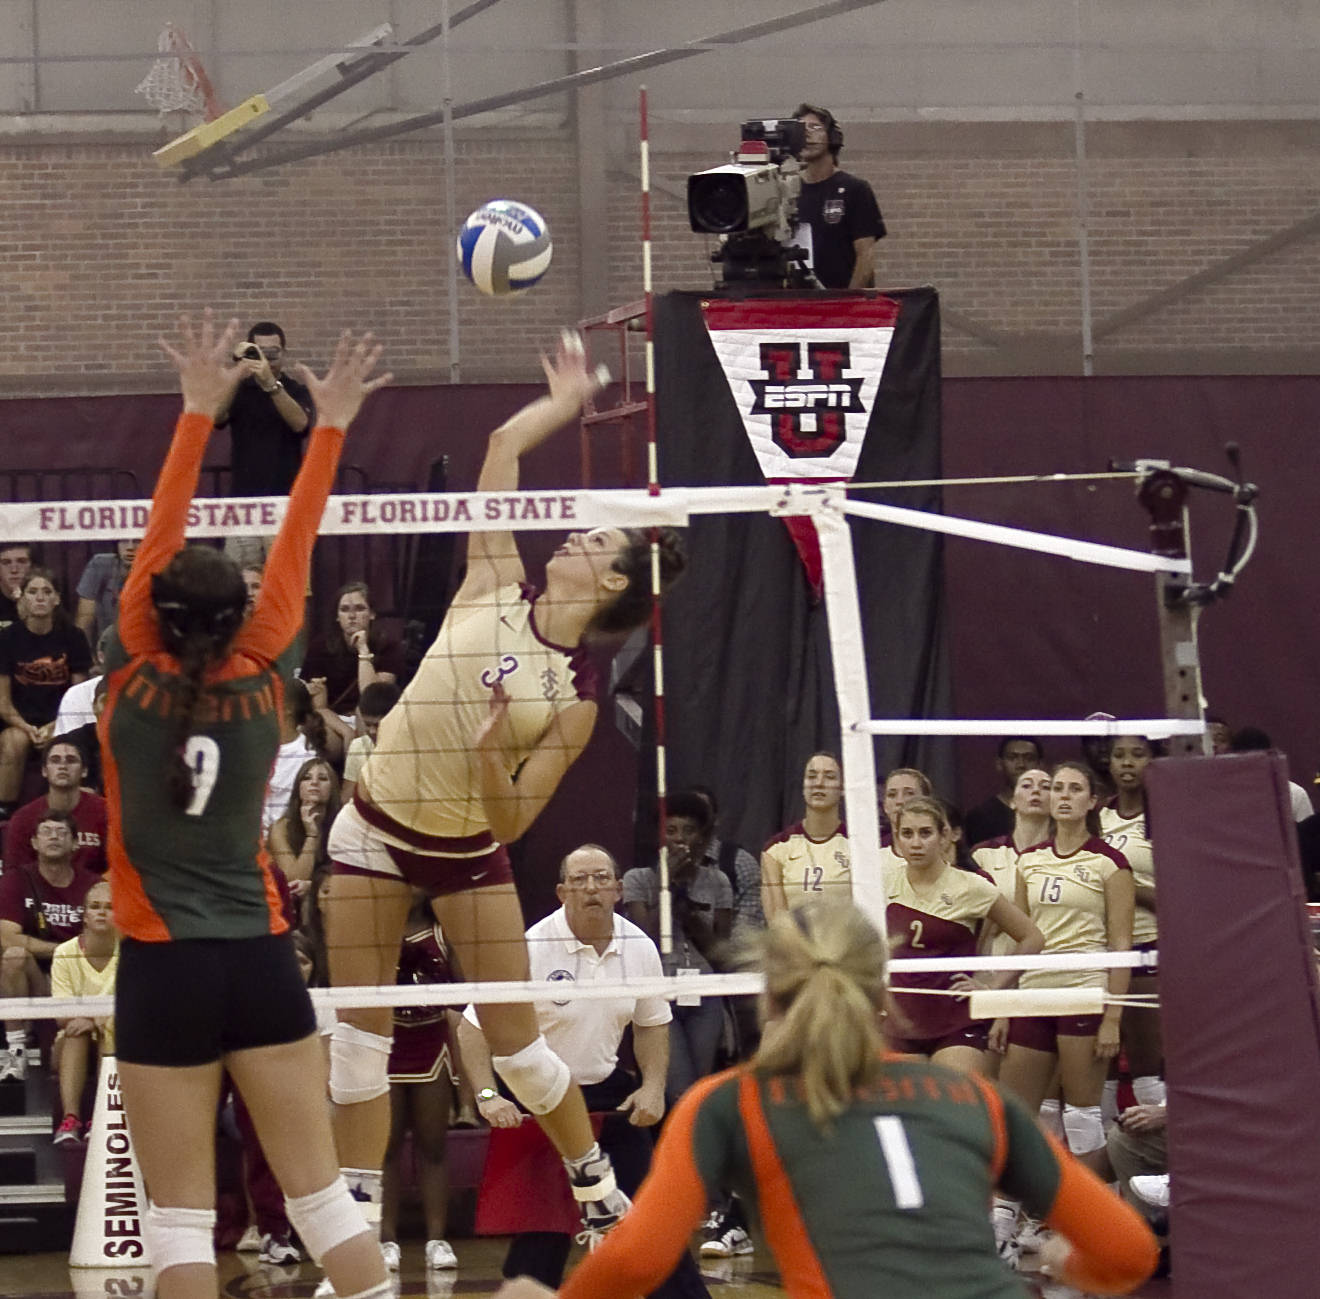 Jekaterina Stepanova (3) FSU vs Miami 9/14/11